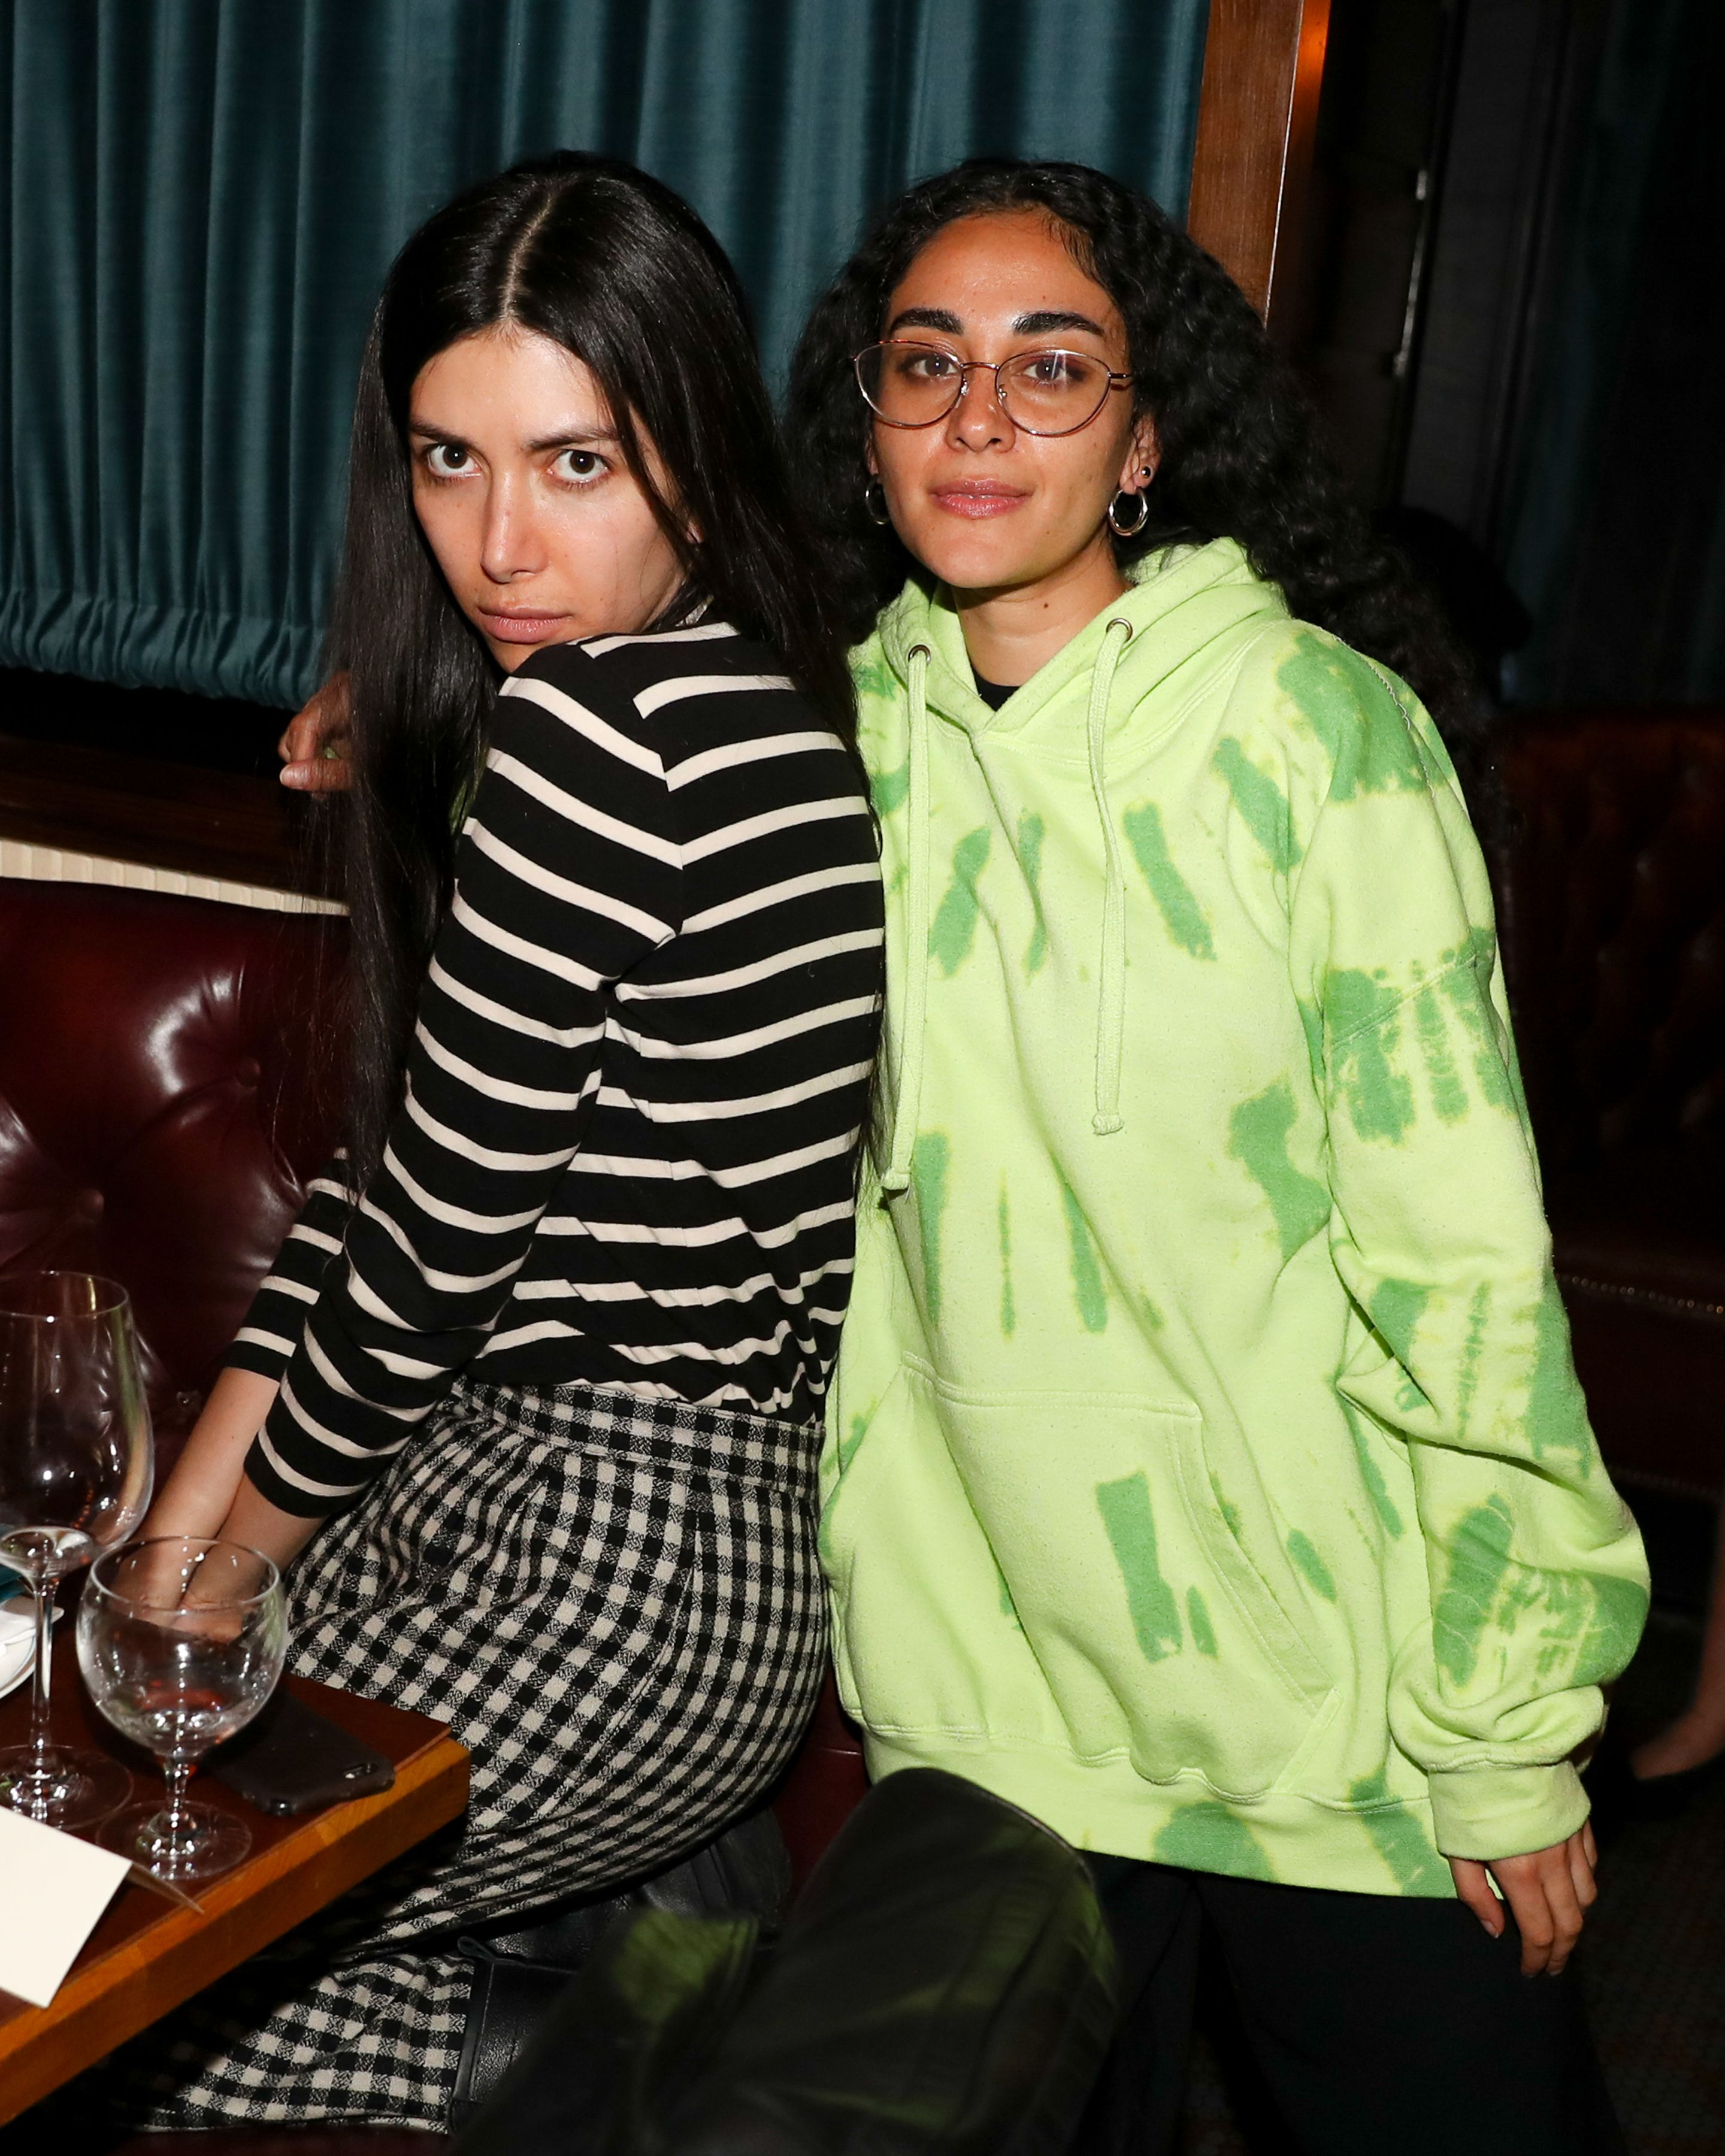 Martine Gutierrez and Hawa Arsala Martine Gutierrez and Hawa Arsala celebrate Korakrit Arunanondchai, boychild, and Alex Gvojic's inclusion in the 58th Venice Biennale and the 2019 Whitney Biennial with a dinner at The Standard New York on May 13.